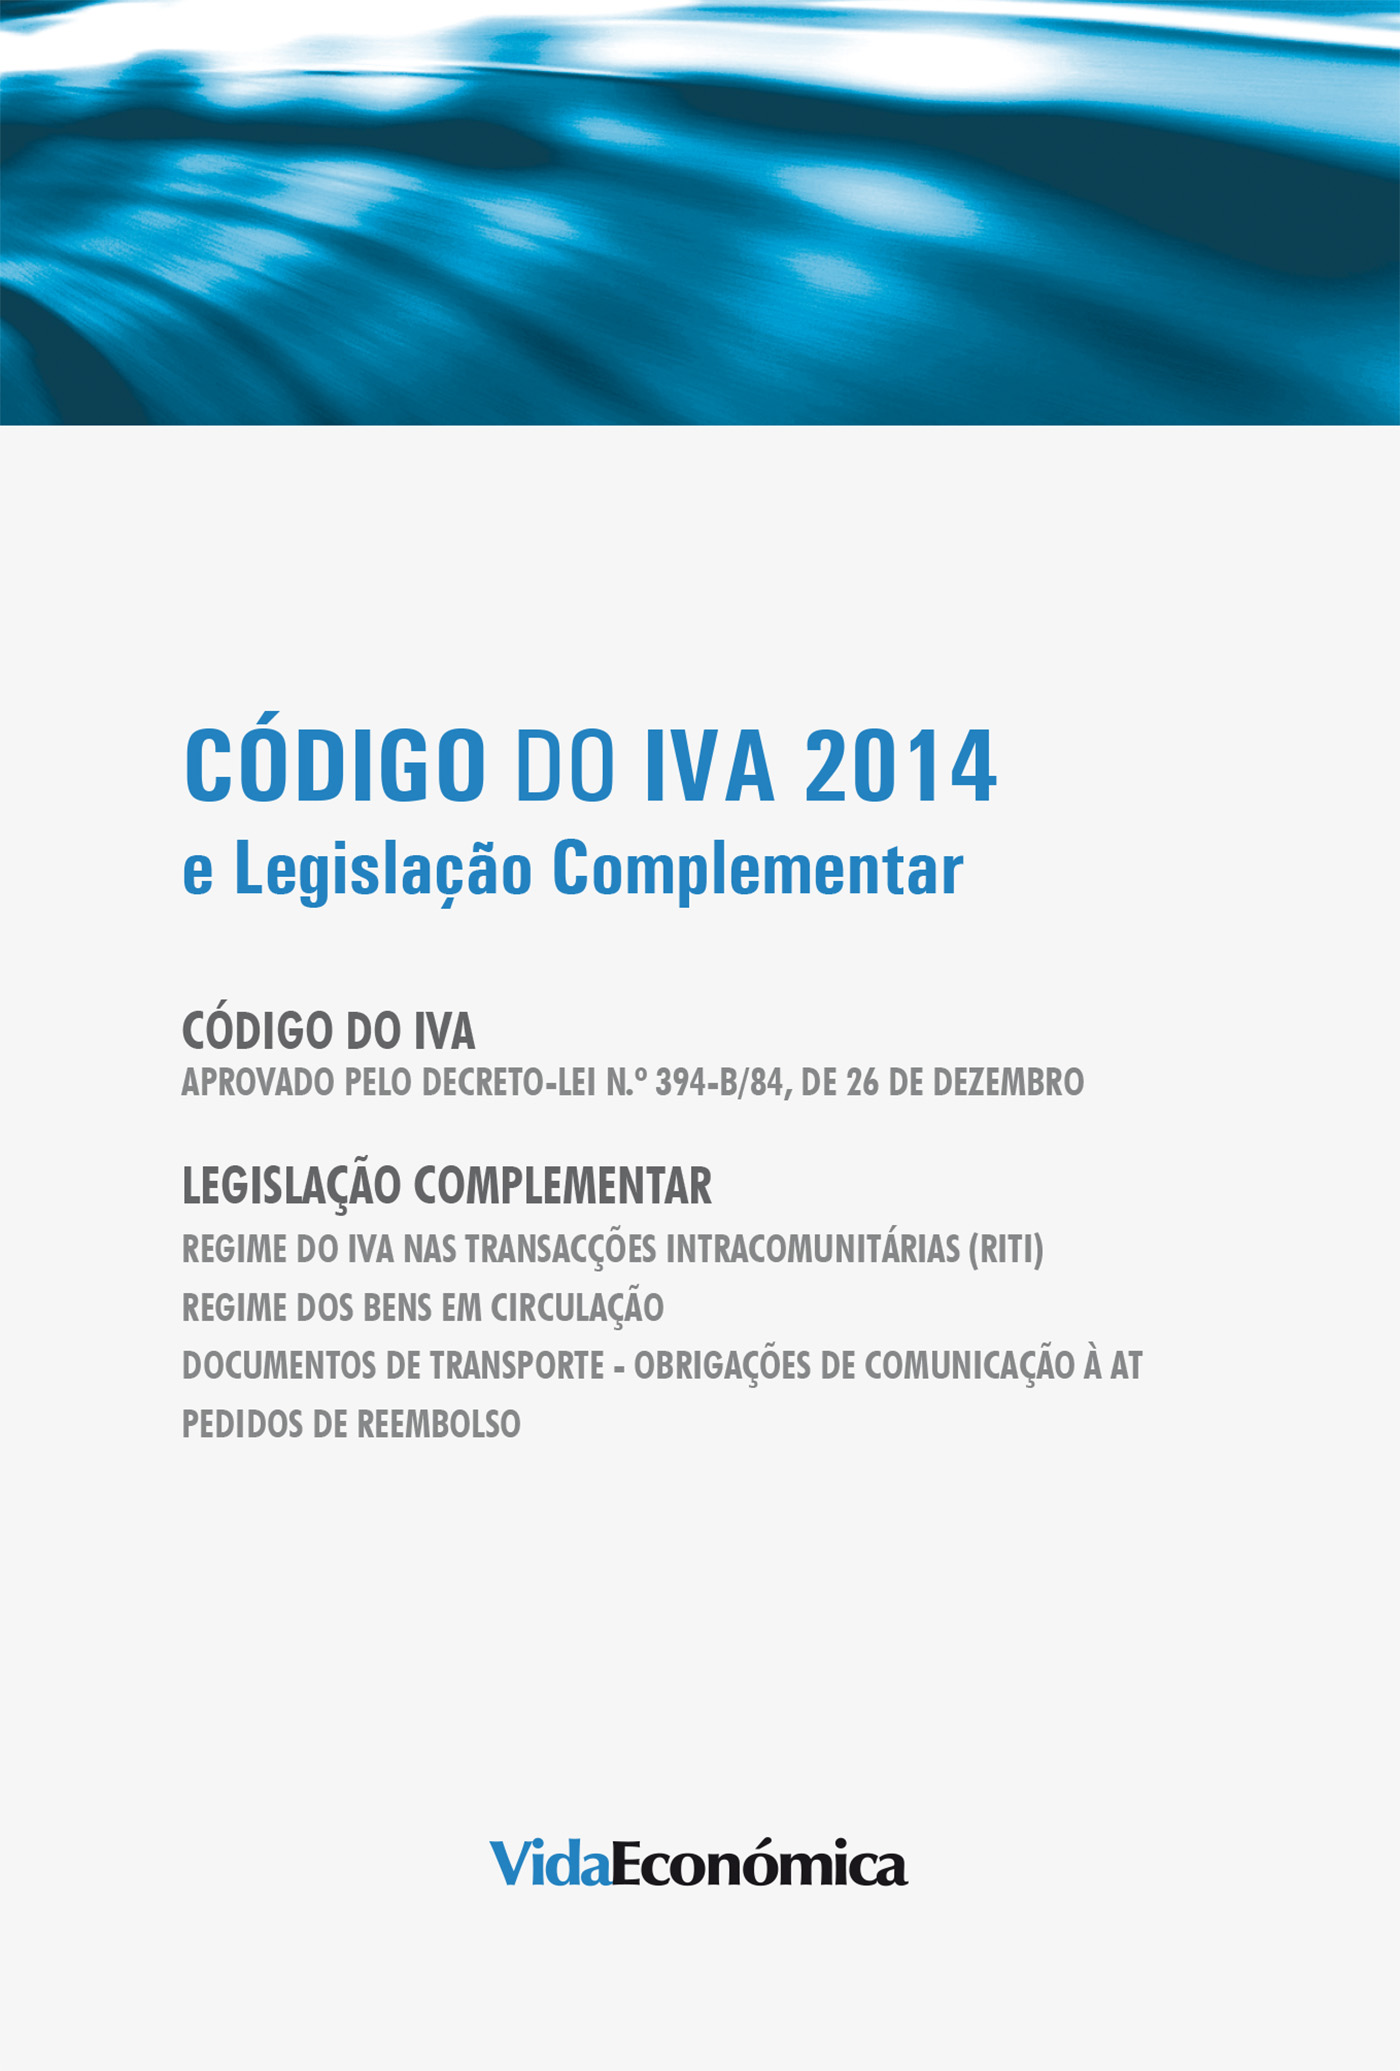 Código do IVA 2014